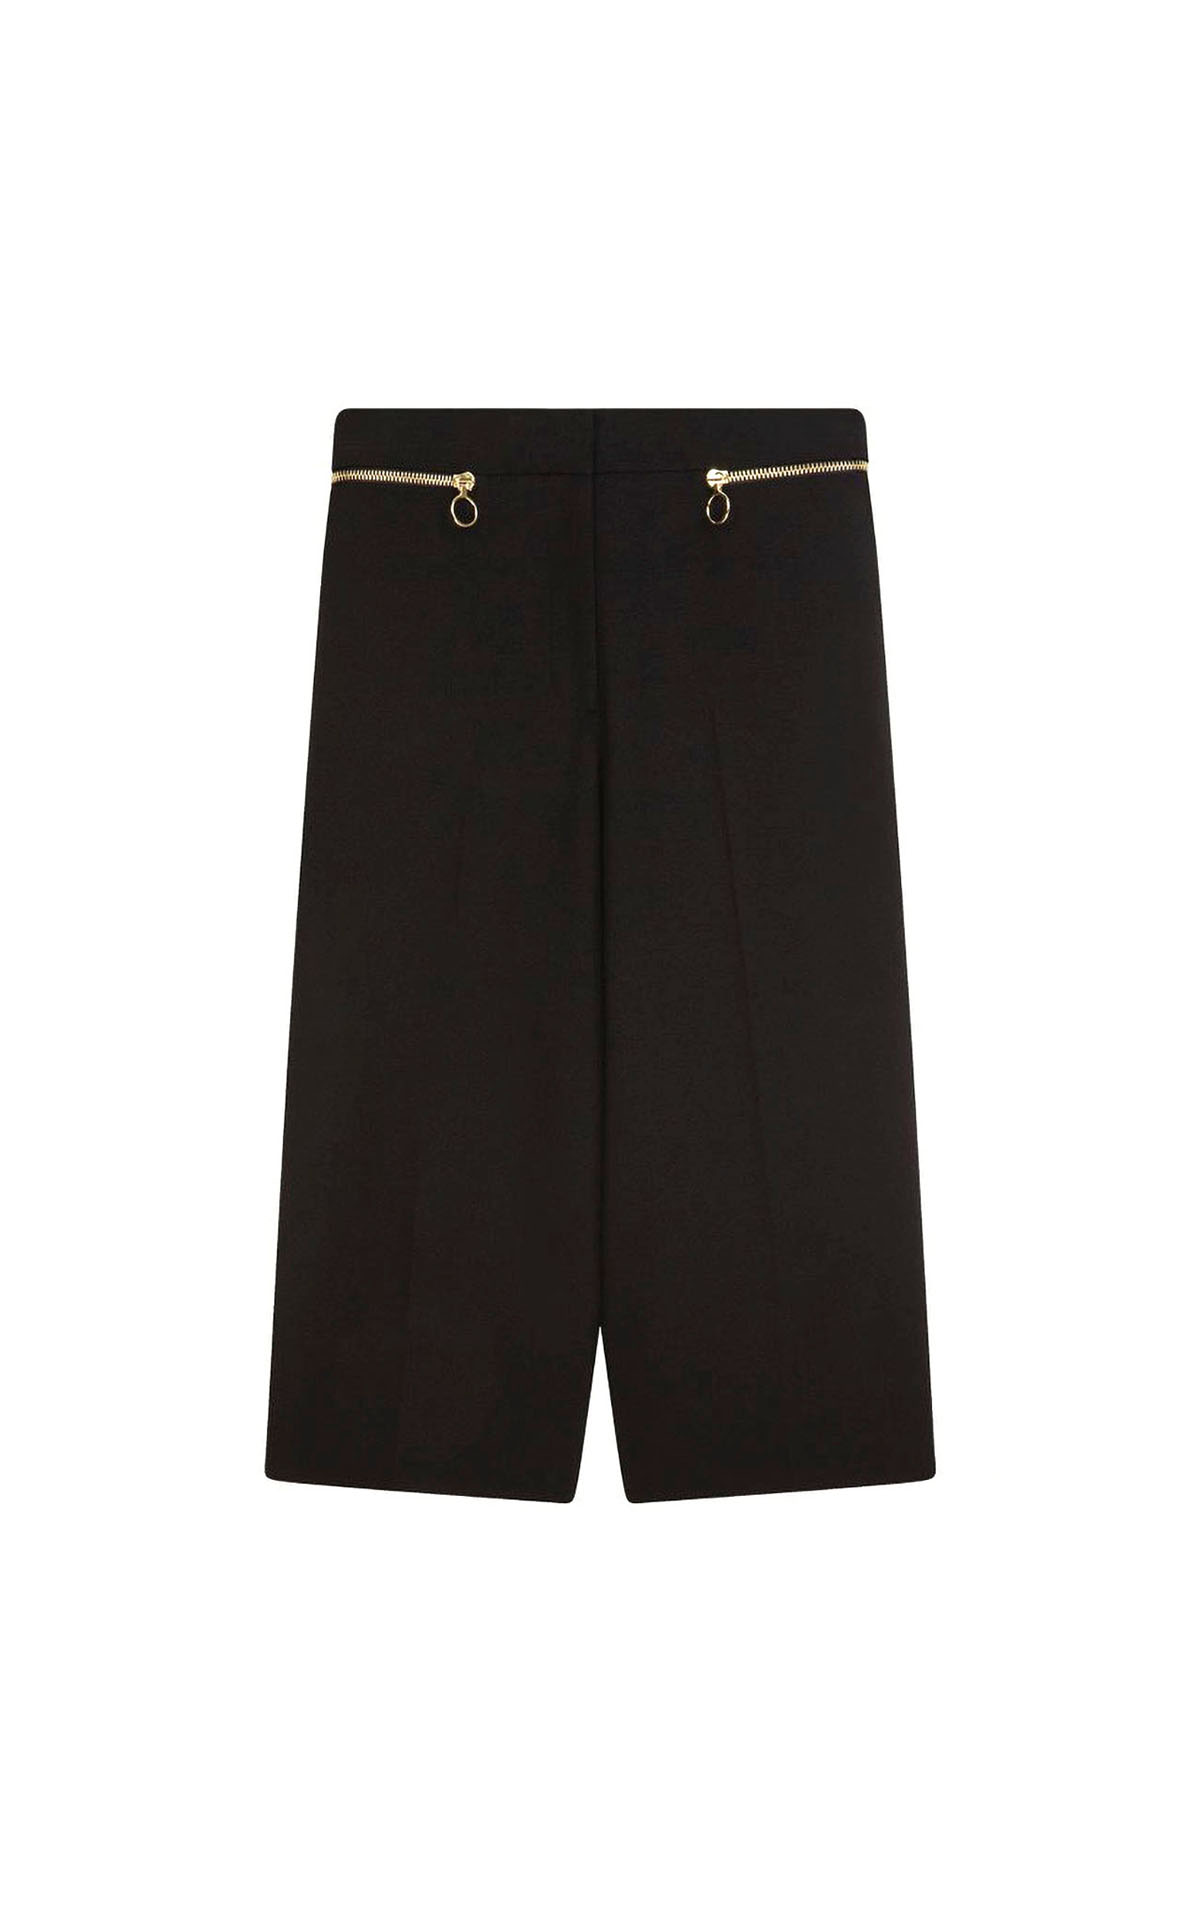 Claudie Pierlot pantalon at The Bicester Village Shopping Collection